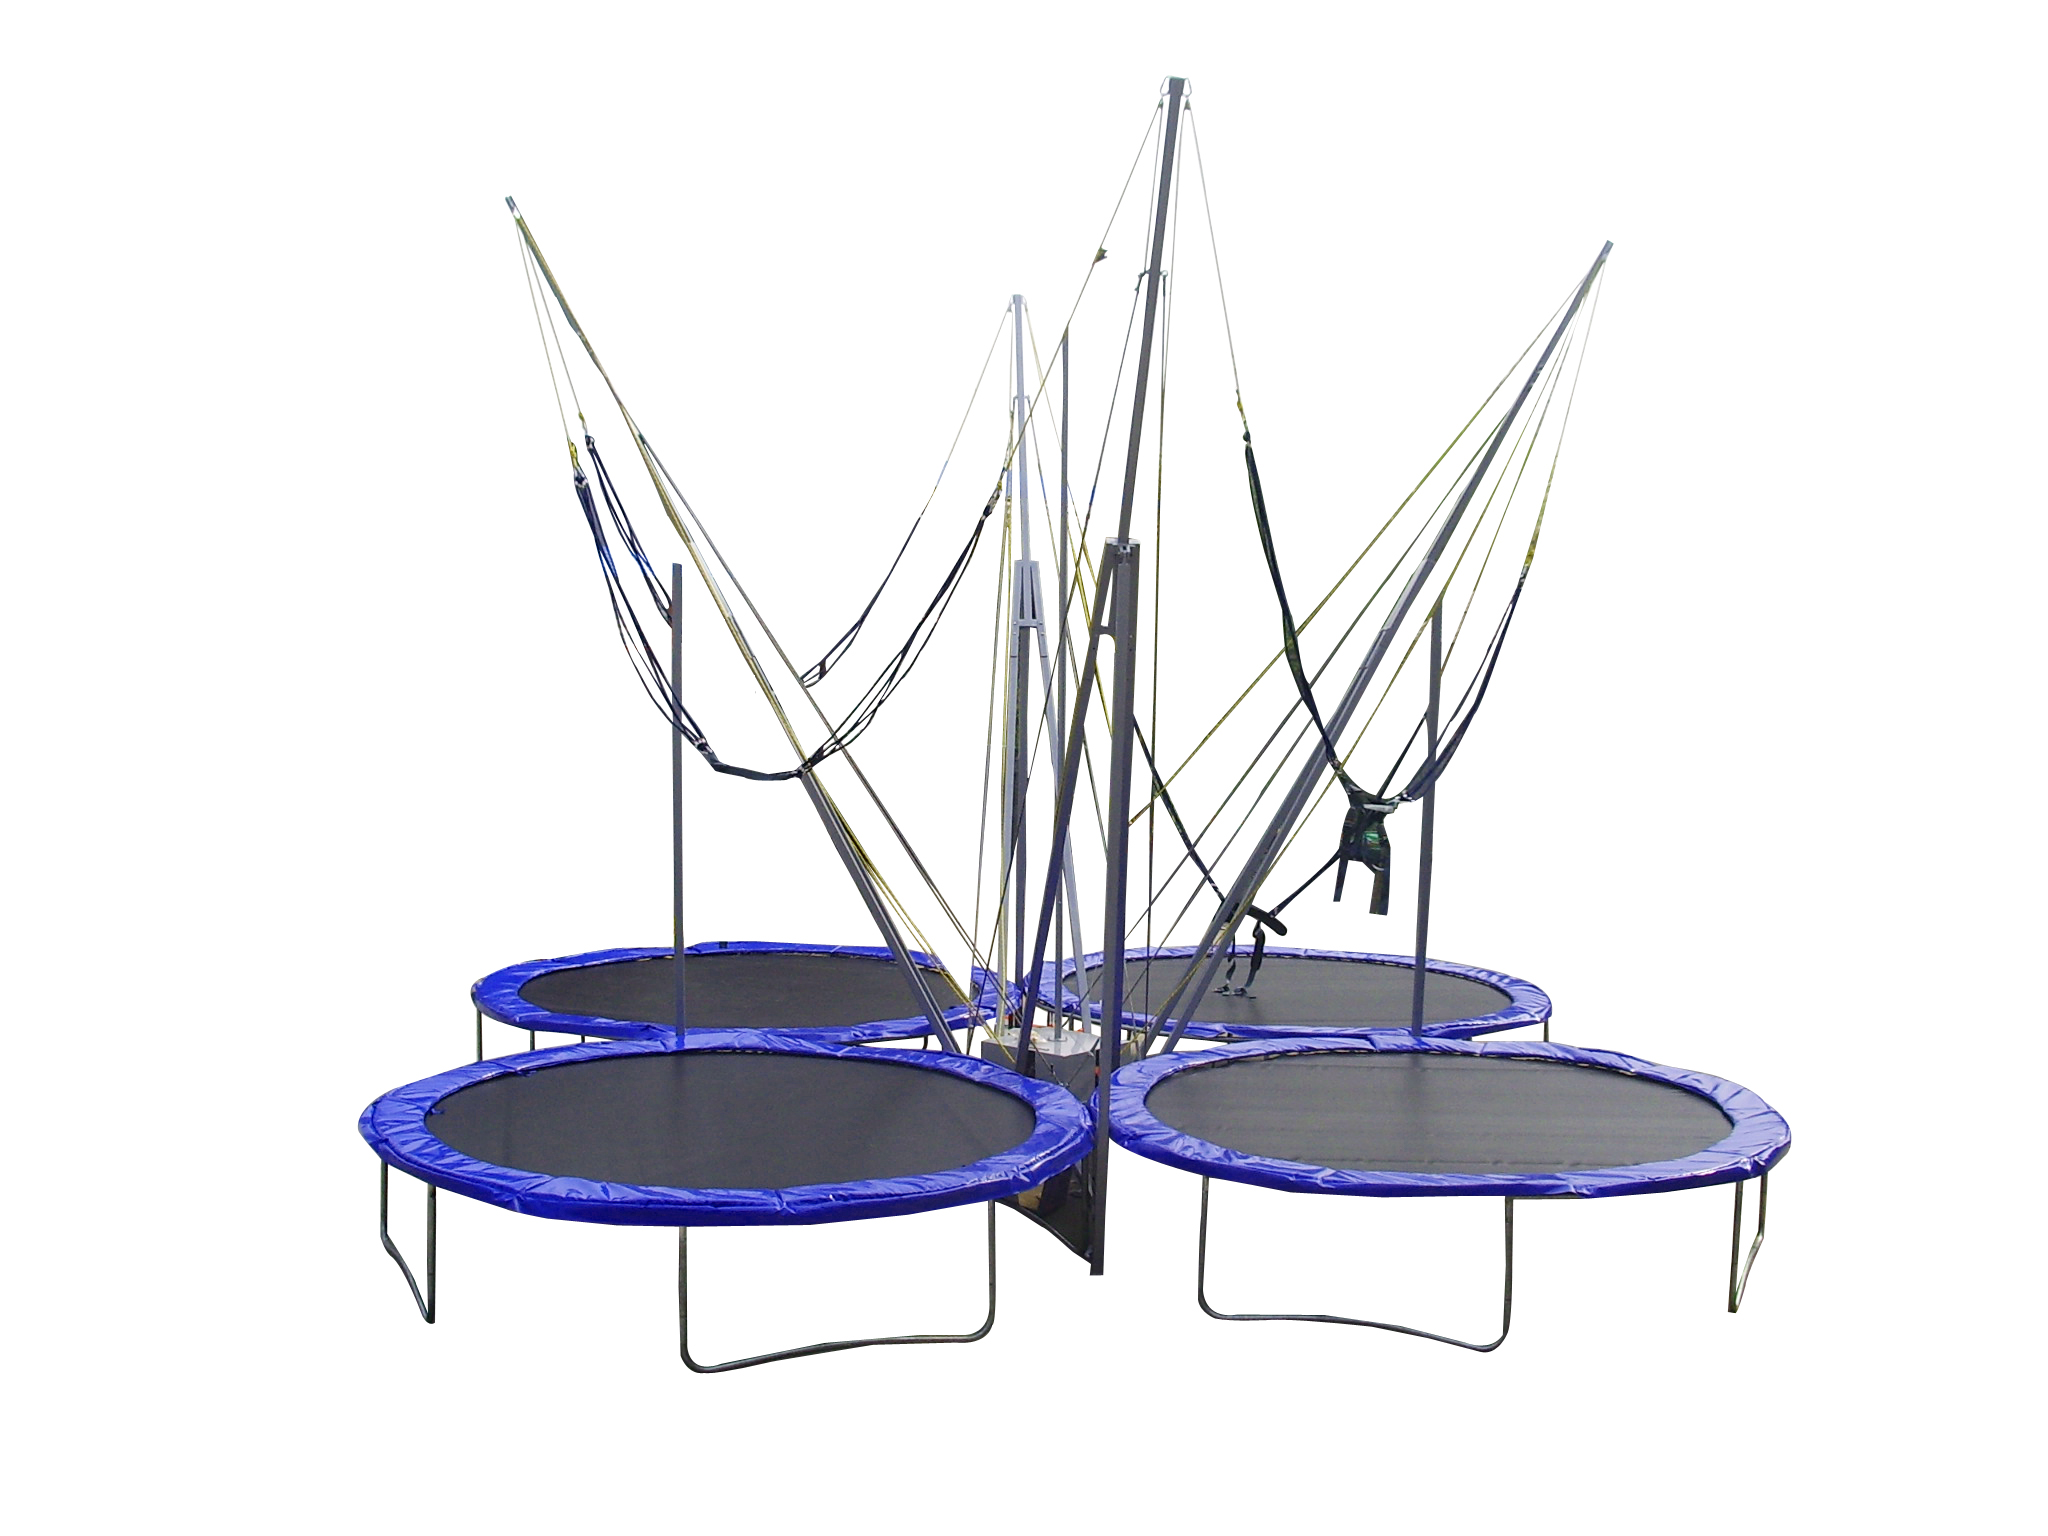 Bungee Trampoline,Bungy Trampoline,Euro Bungy Trampoline,Bungee Jump,4 in one Bungee Trampoline